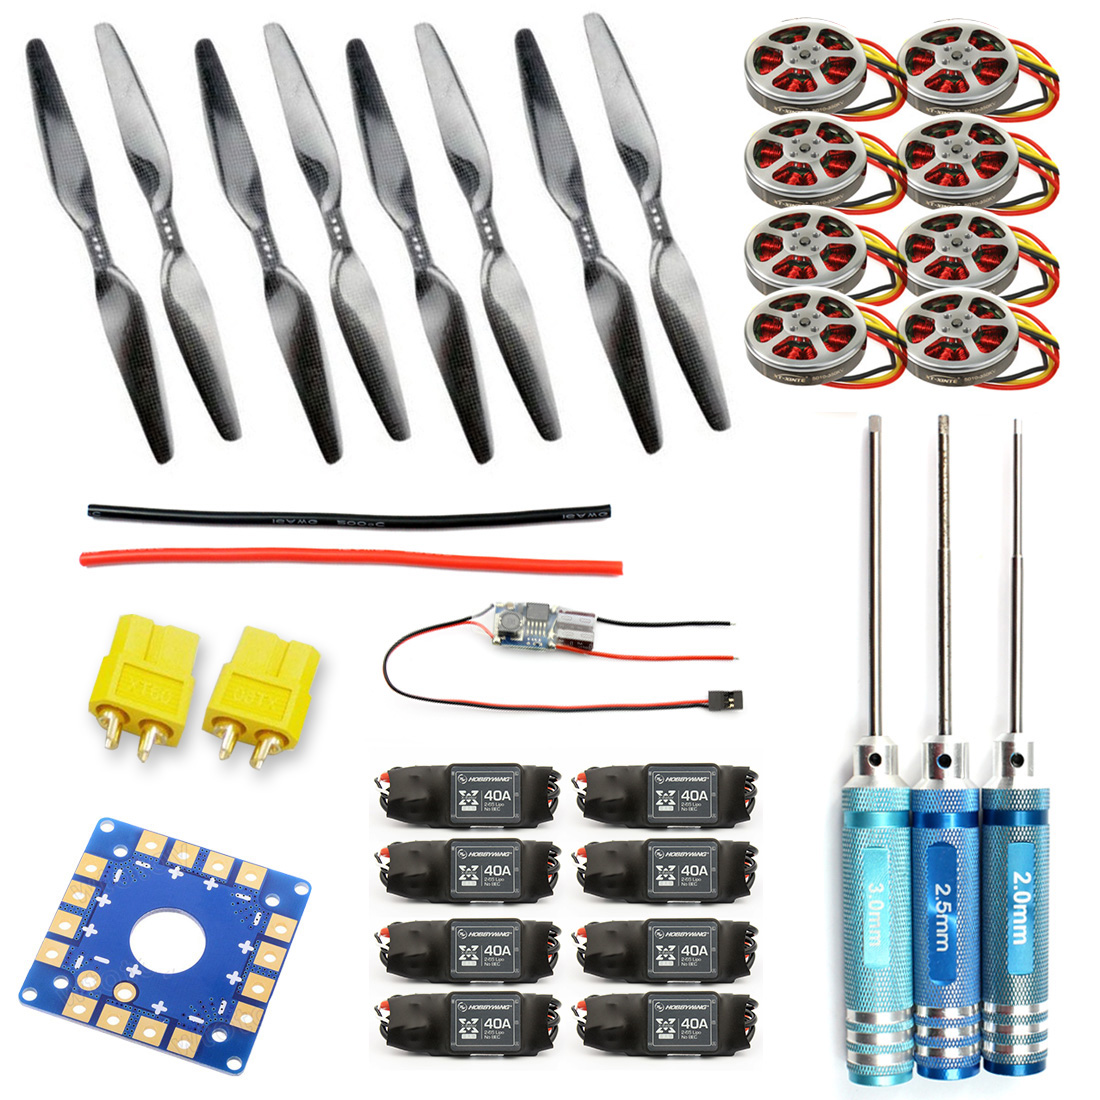 JMT KK Connection Board+350KV Brushless Disk Motor+16x5.5 Propeller+40A ESC Foldable Rack RC Helicopter Kit